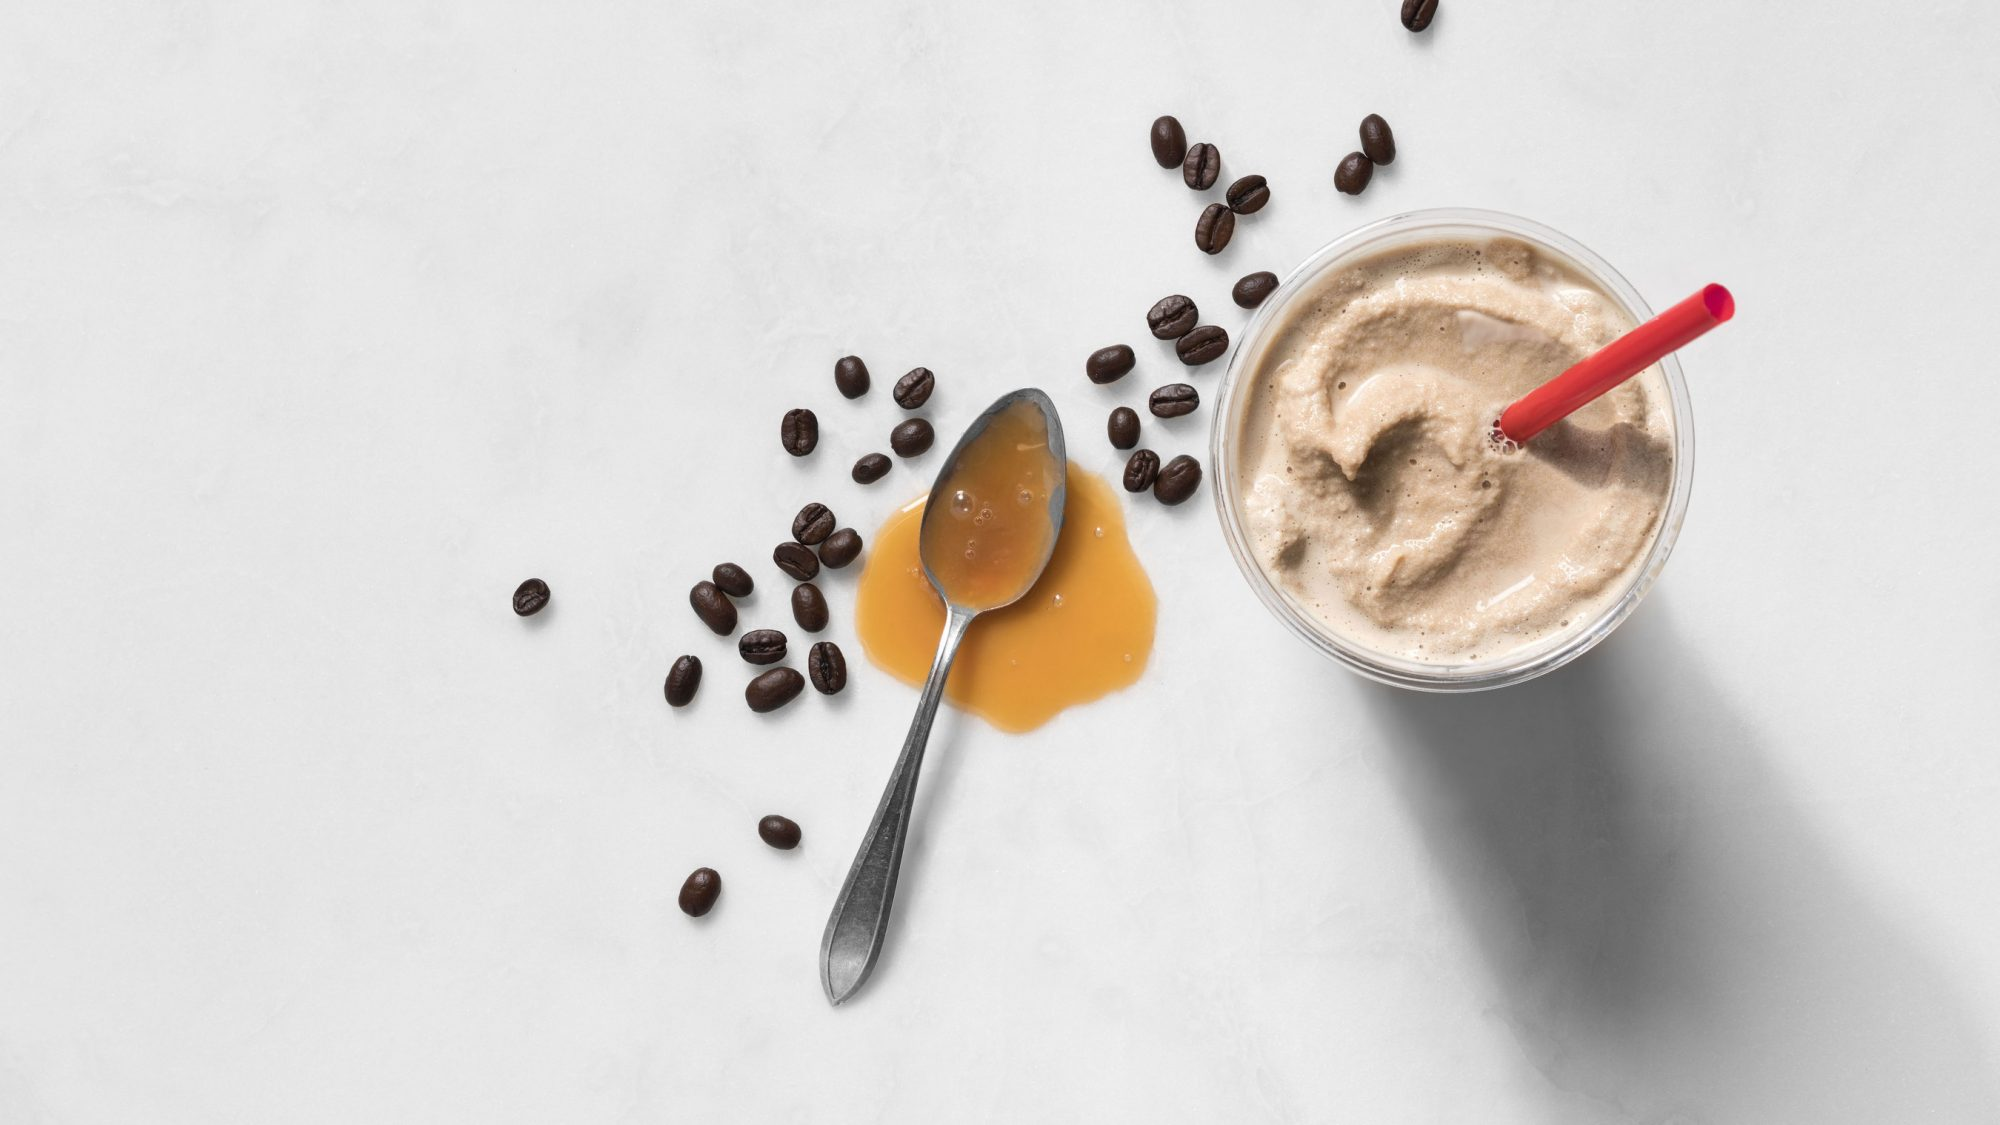 Chick-fil-A's New Frosted Caramel Coffee Looks Deliciously Decadent